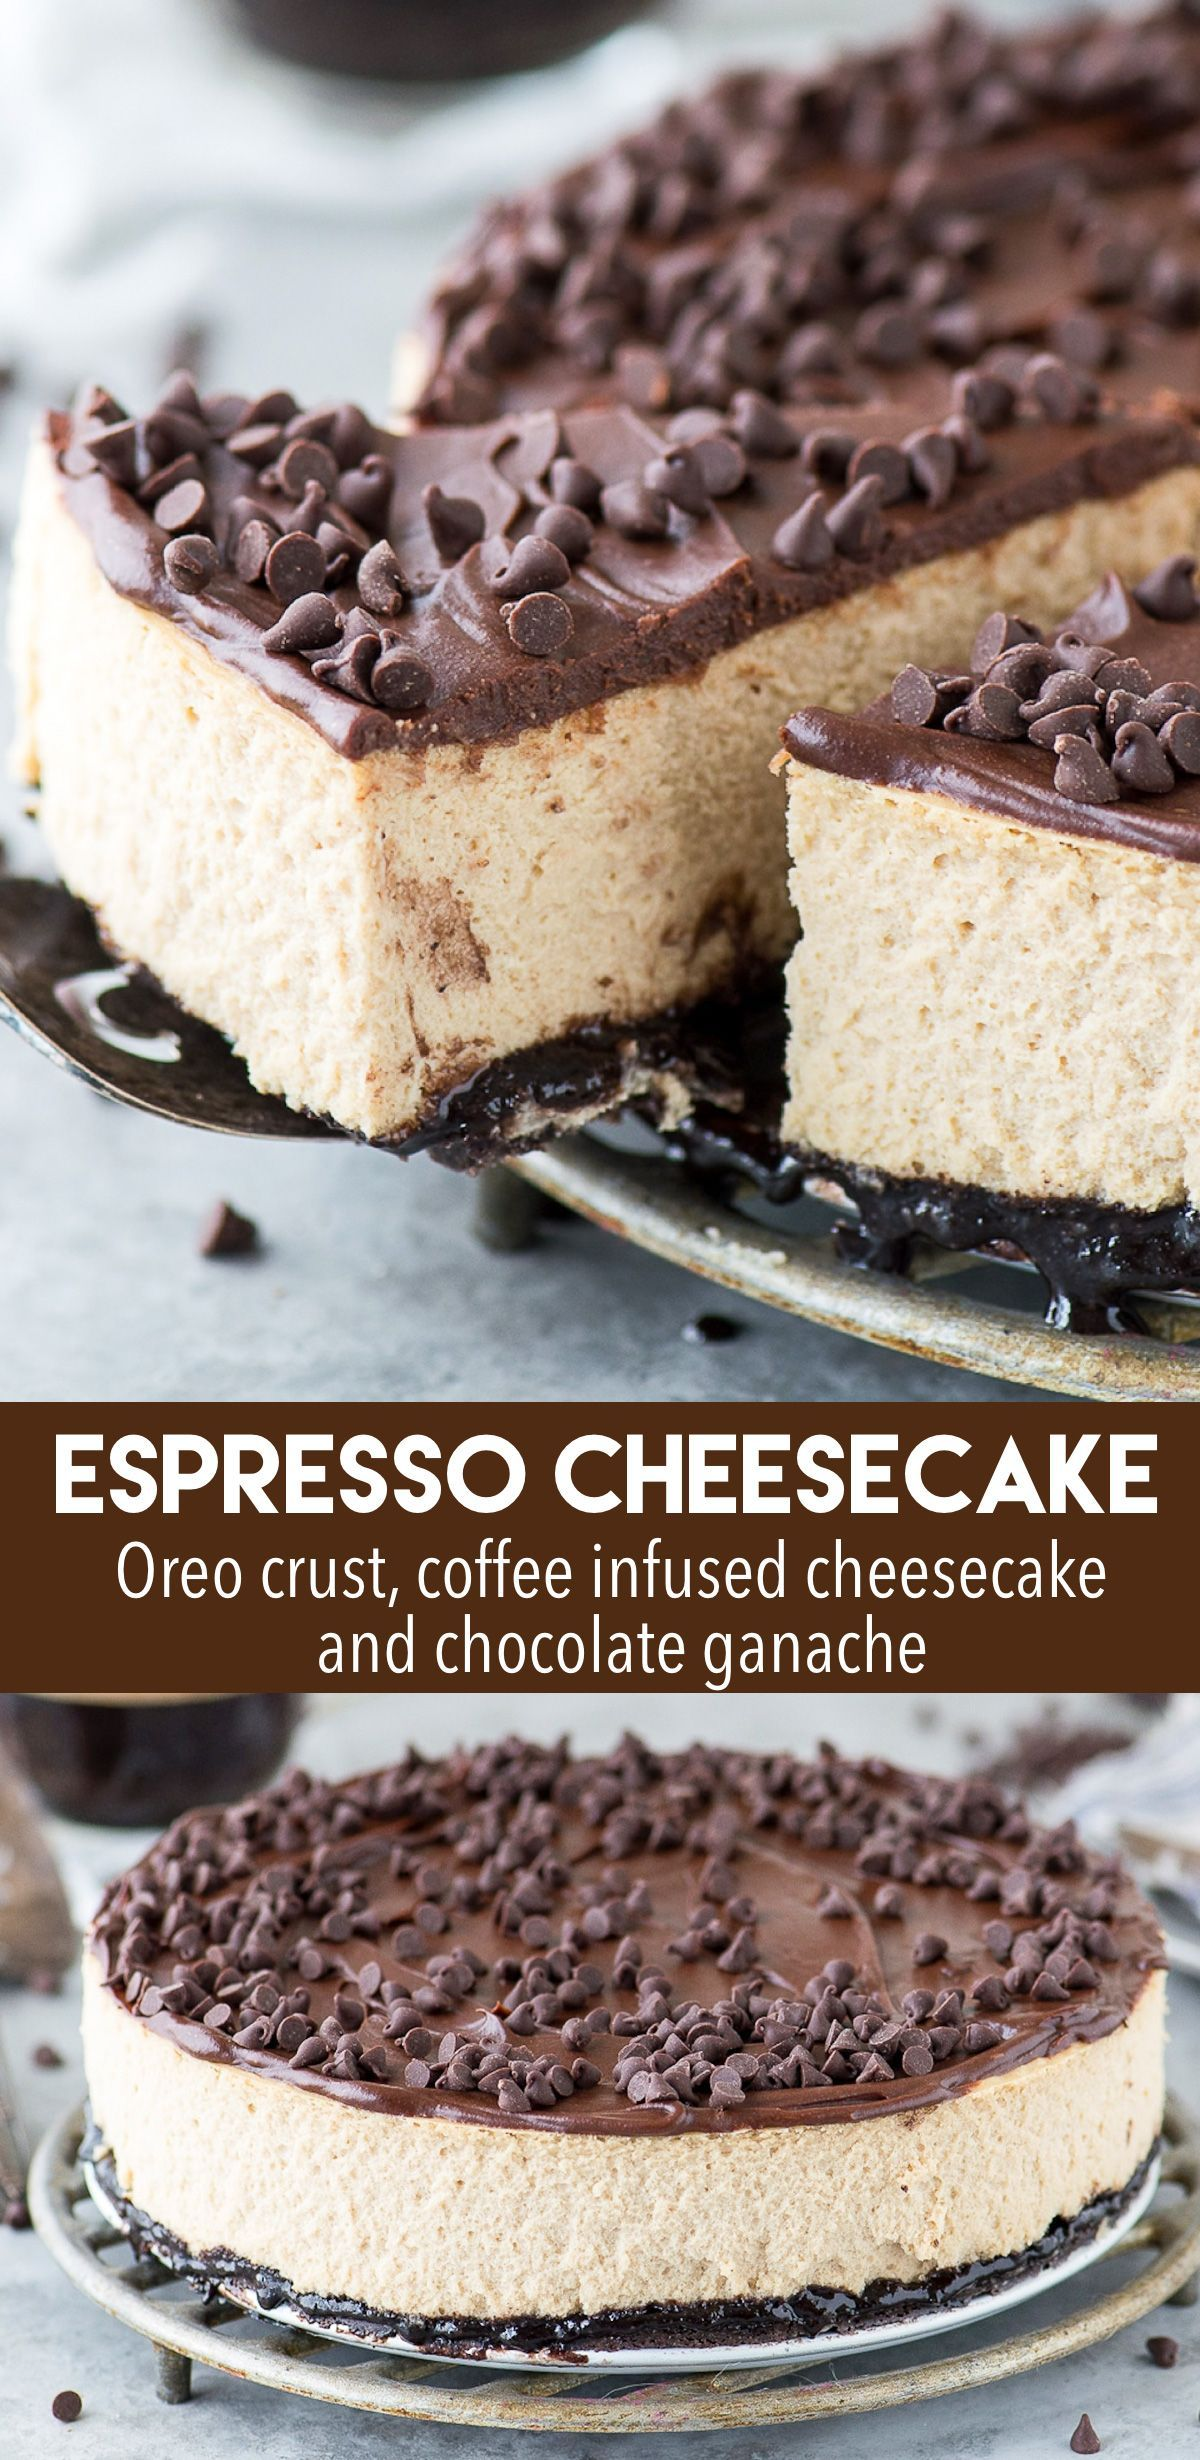 Espresso Cheesecake #cheesecake The most amazing espresso coffee cheesecake with an oreo crust and a layer of chocolate ganache! This cheesecake has real espresso in it for BIG coffee flavor! #cheesecake #espressocheesecake #coffeecheesecake #espressocoffee